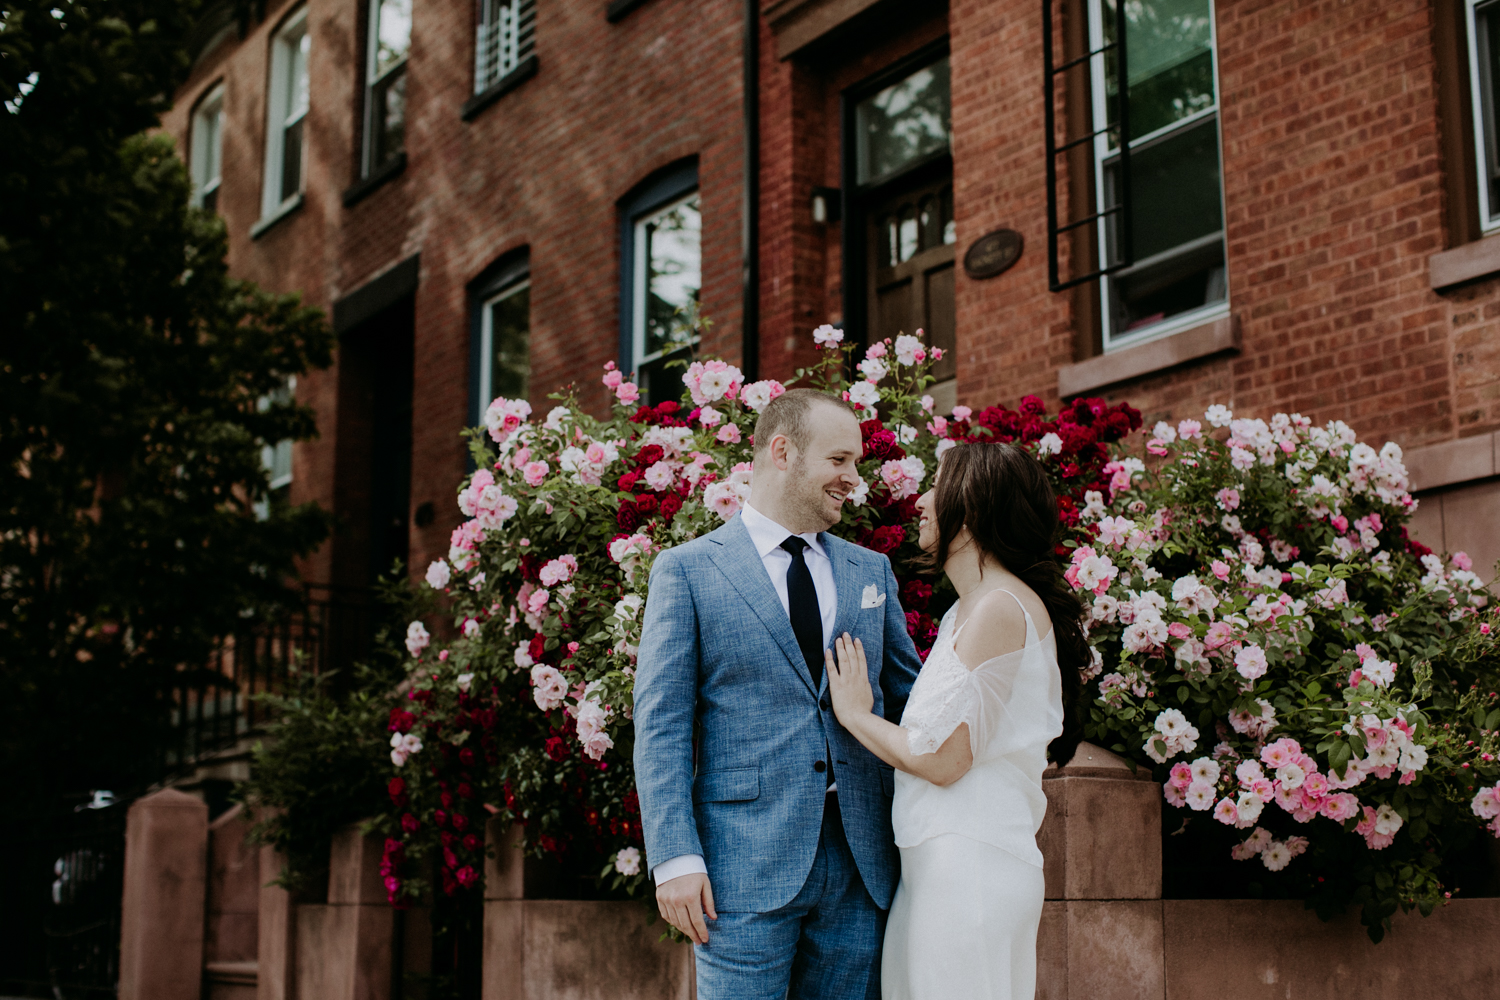 Roni and Jake's cocktail-style wedding at 501 Union in brooklyn